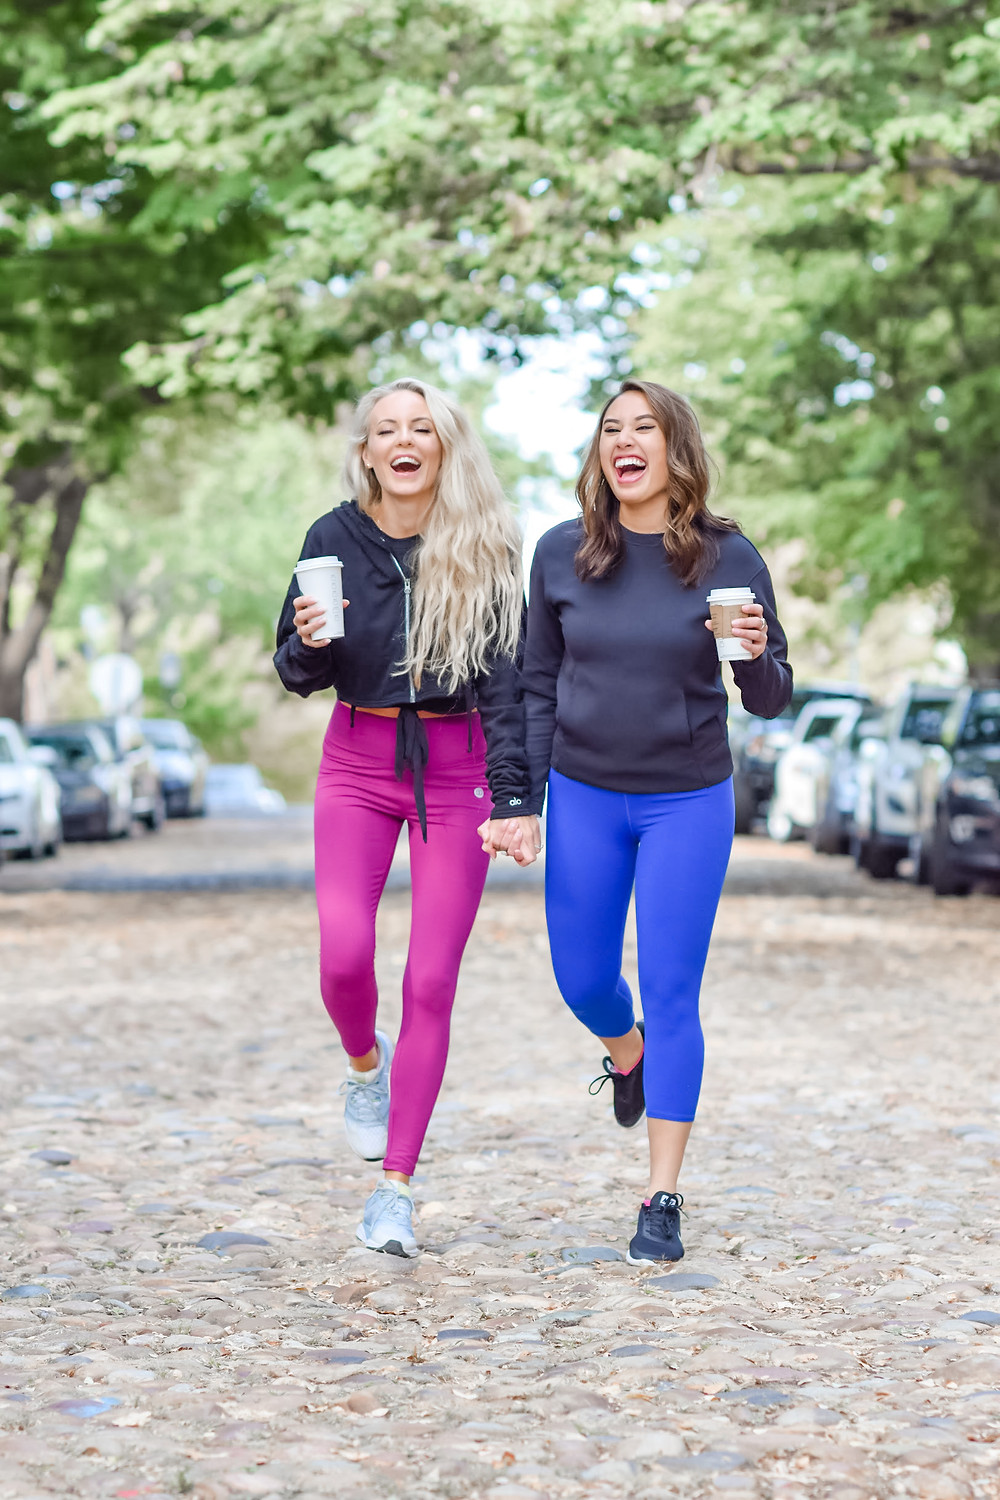 fitness girls laughing